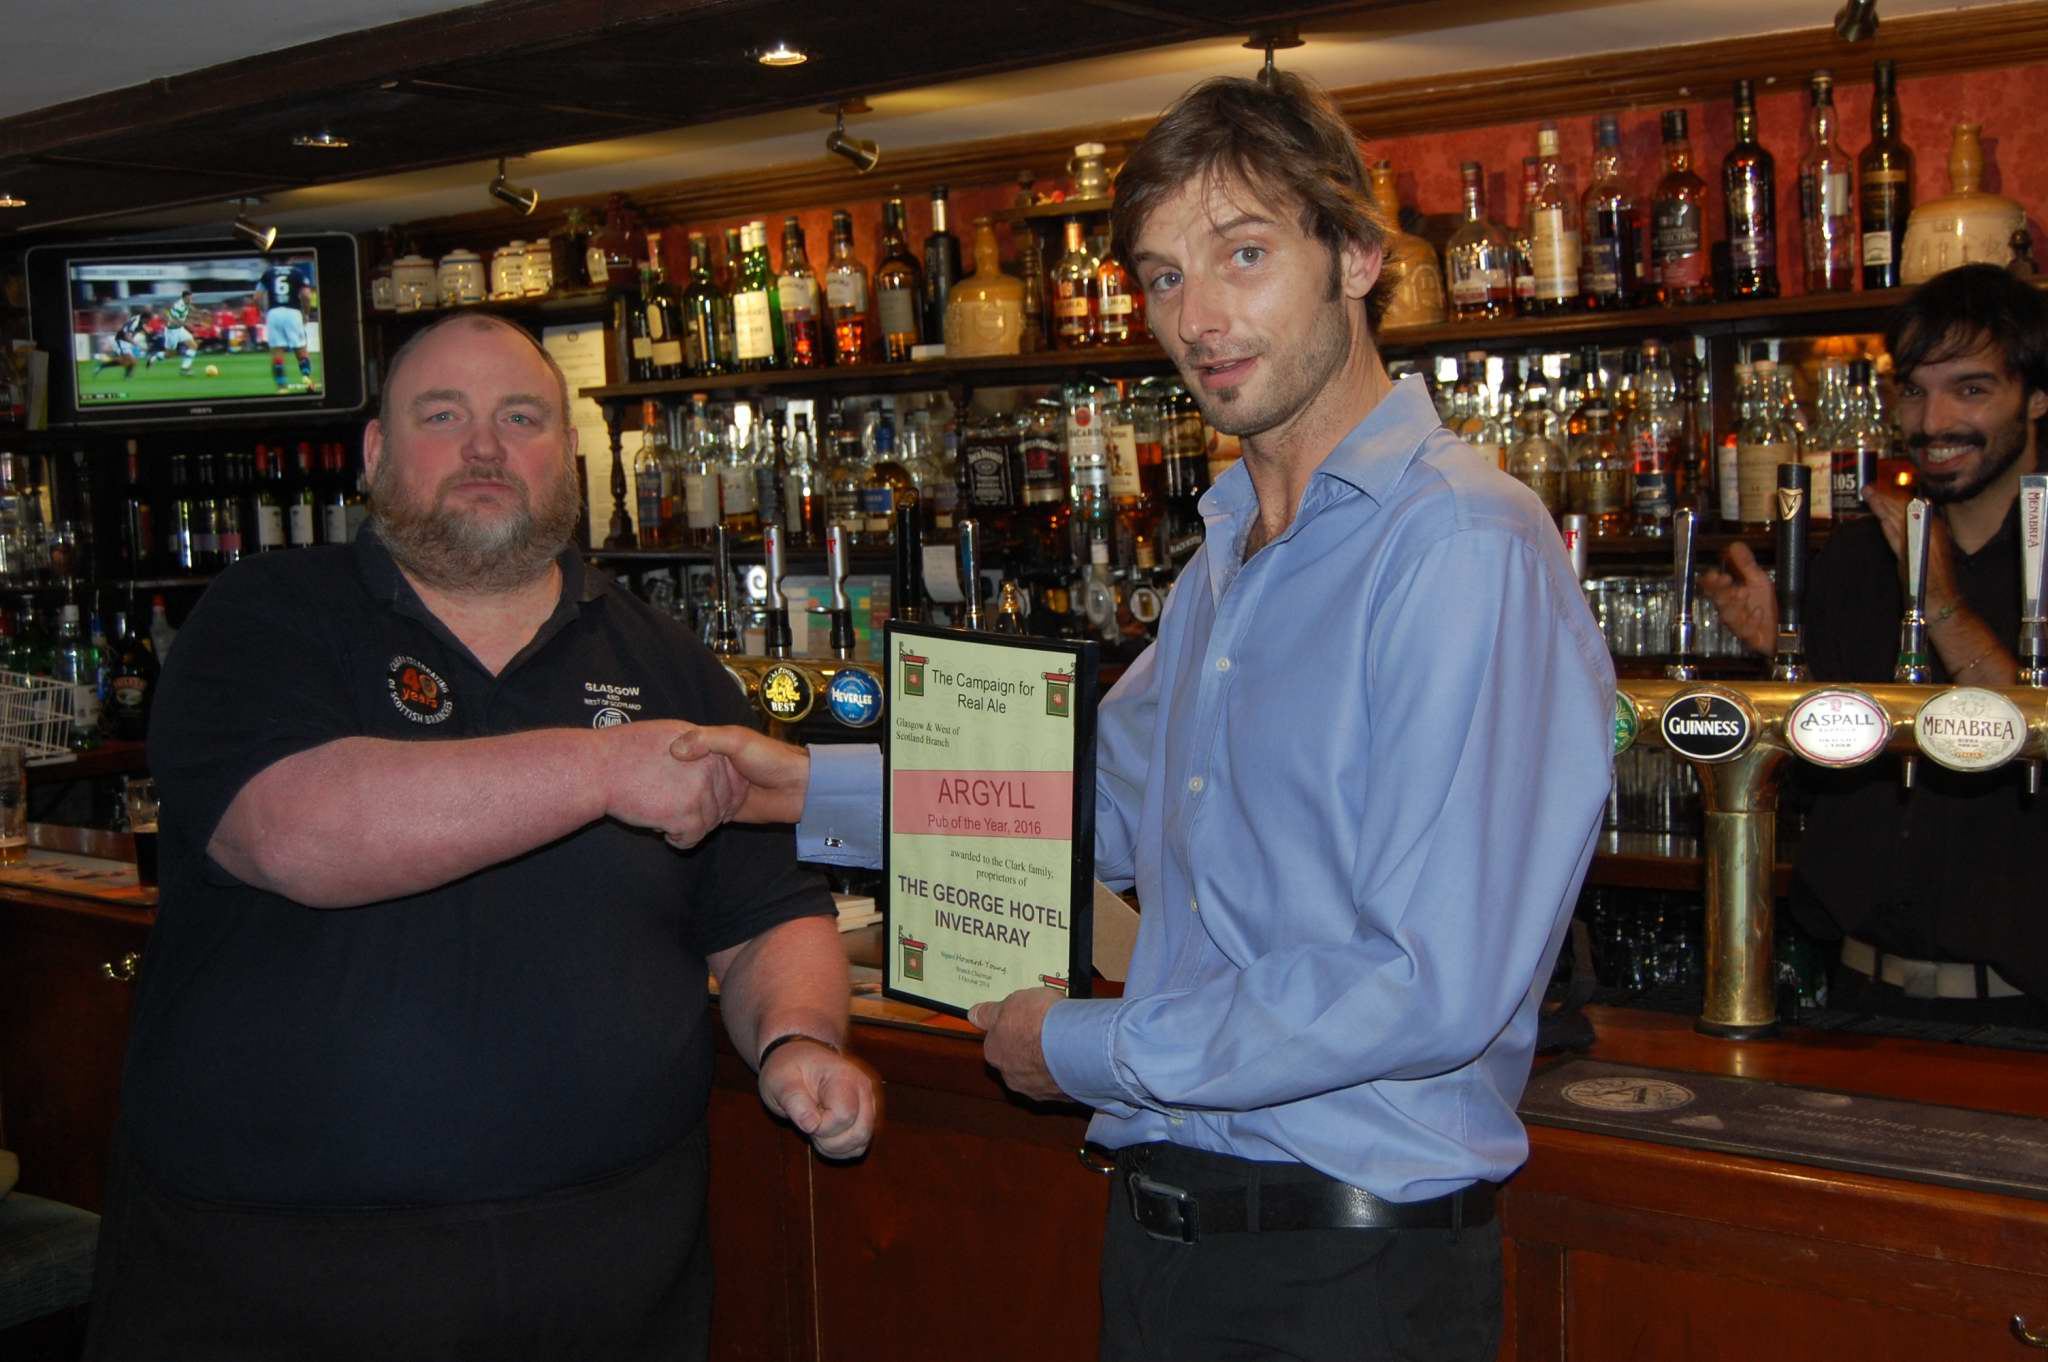 2016 Argyll Pub of the Year